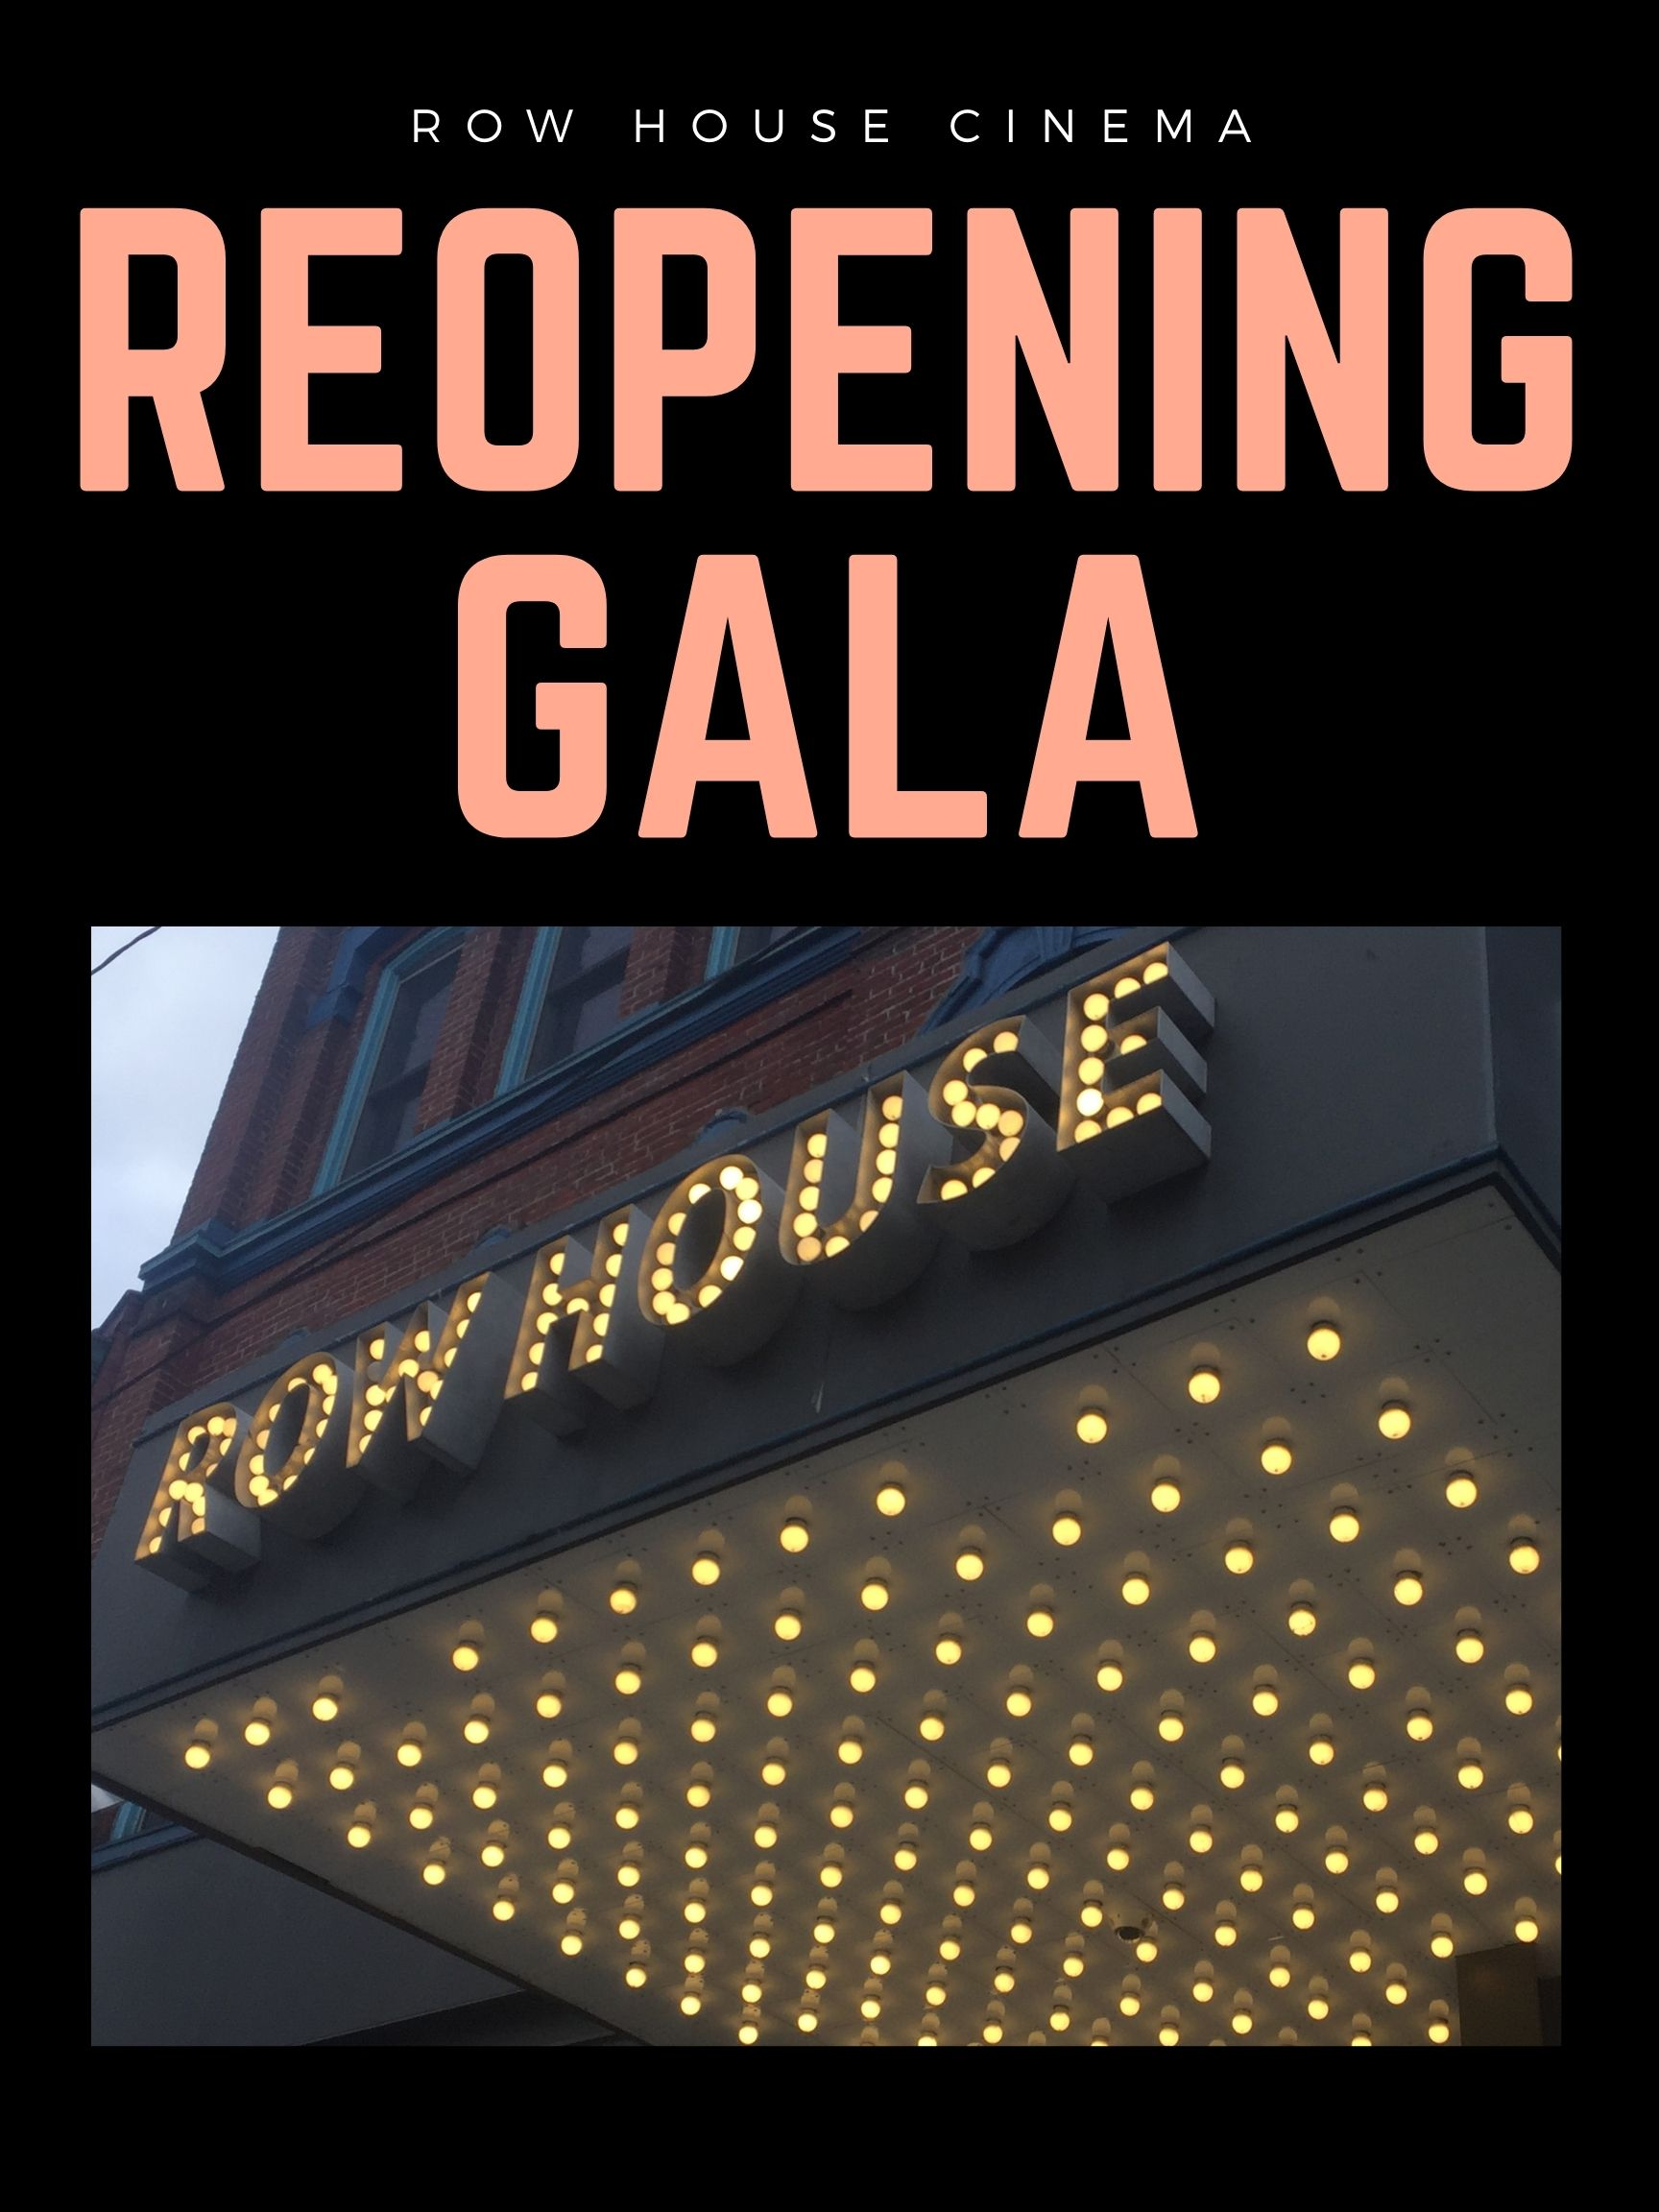 Poster for Red Carpet Reopening Gala